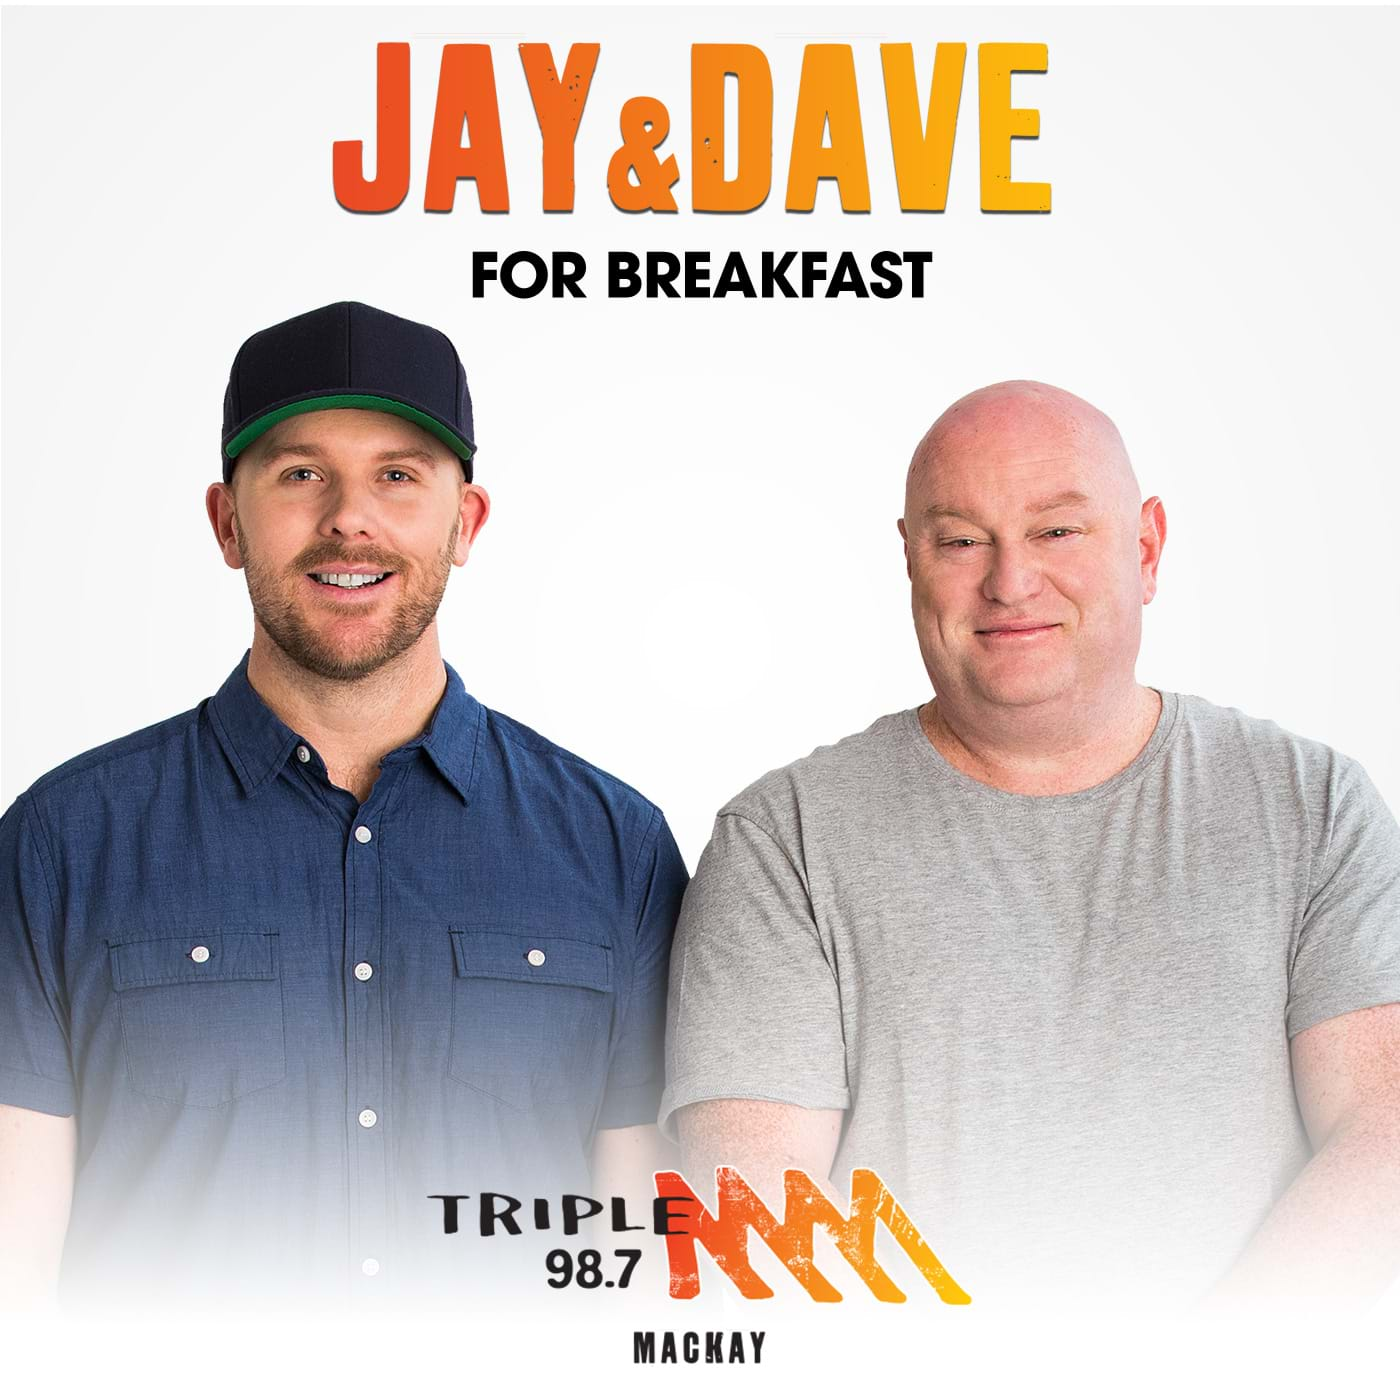 Jay & Dave